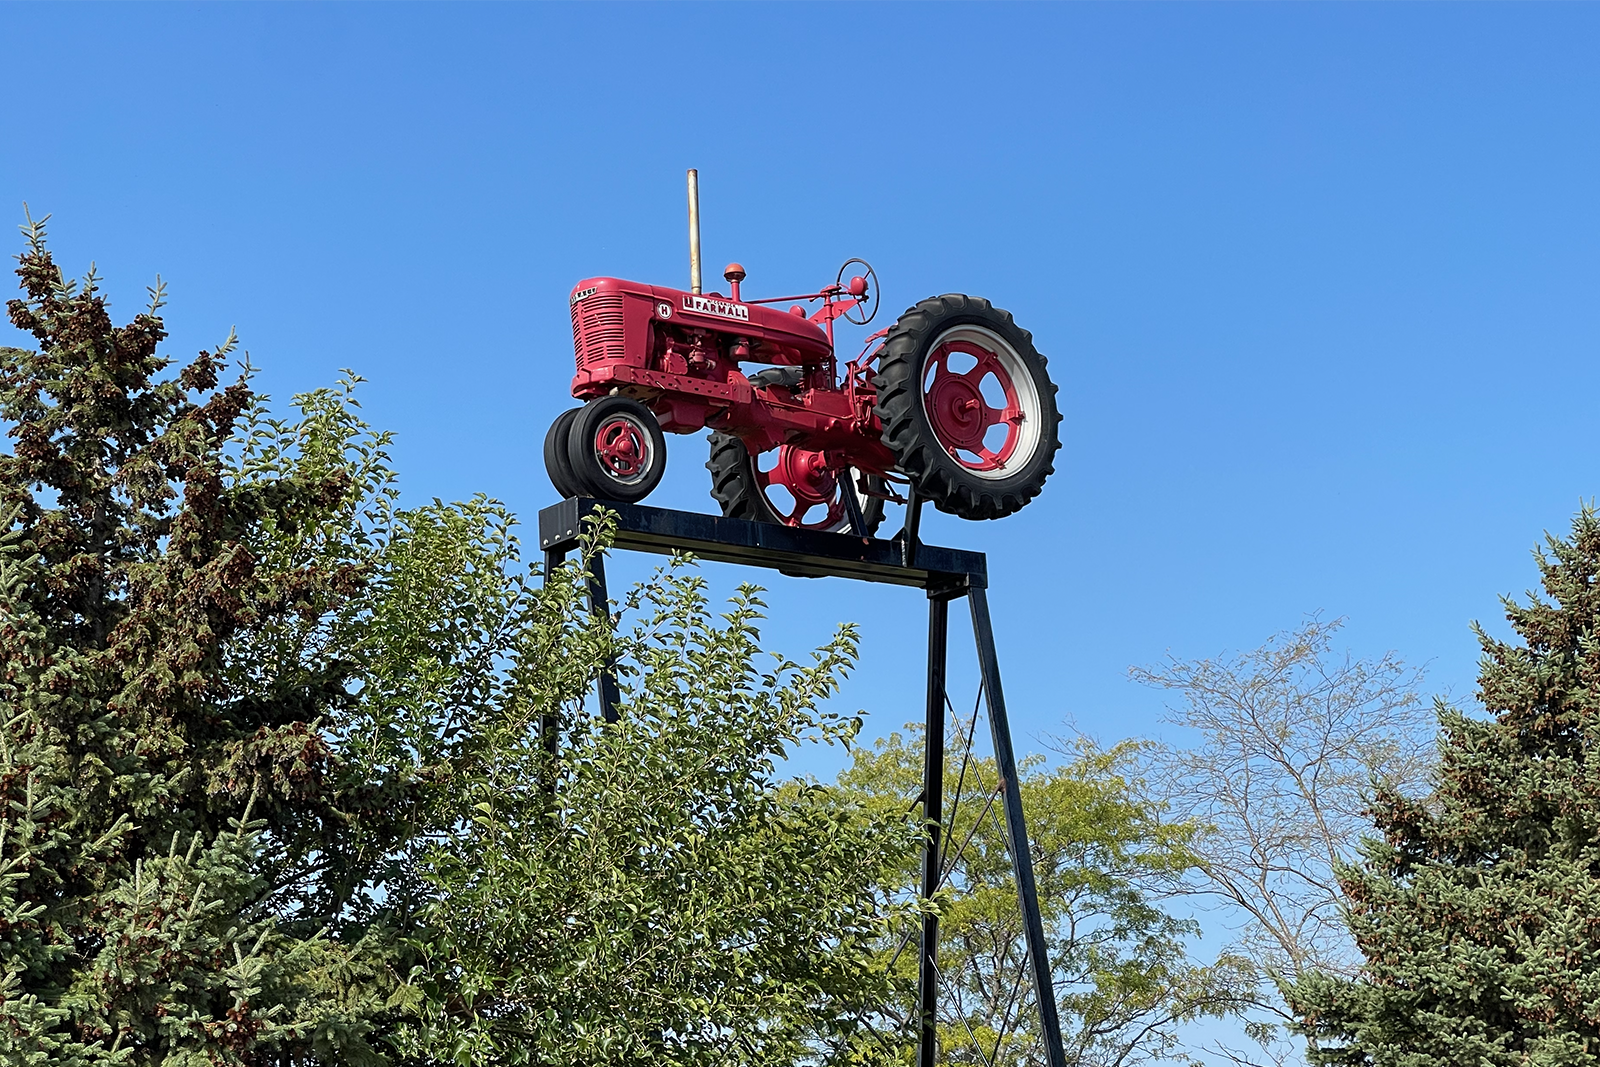 Farmall H on the top of a tall tower, welcoming guests to Farmall Land.